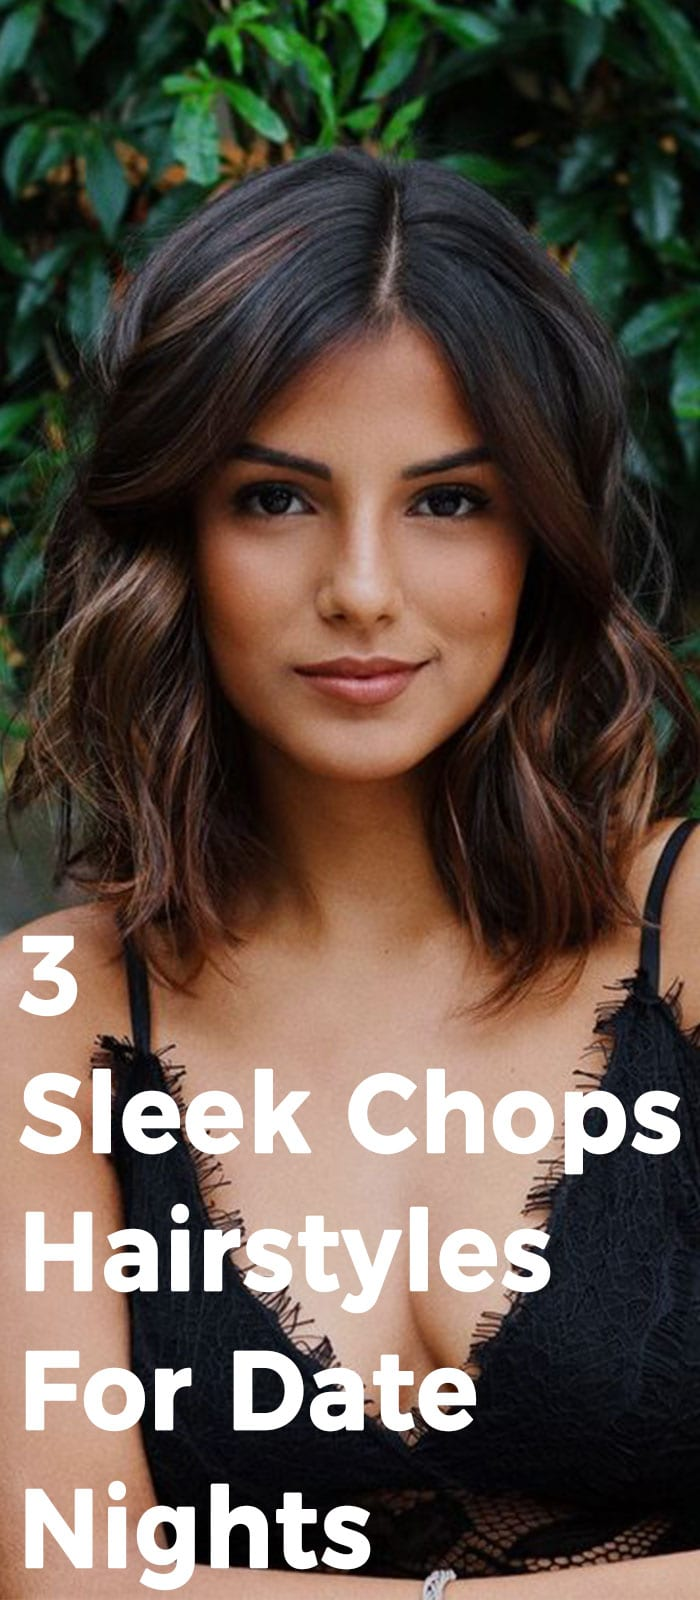 3 Sleek Chops Hairstyles For Date Nights